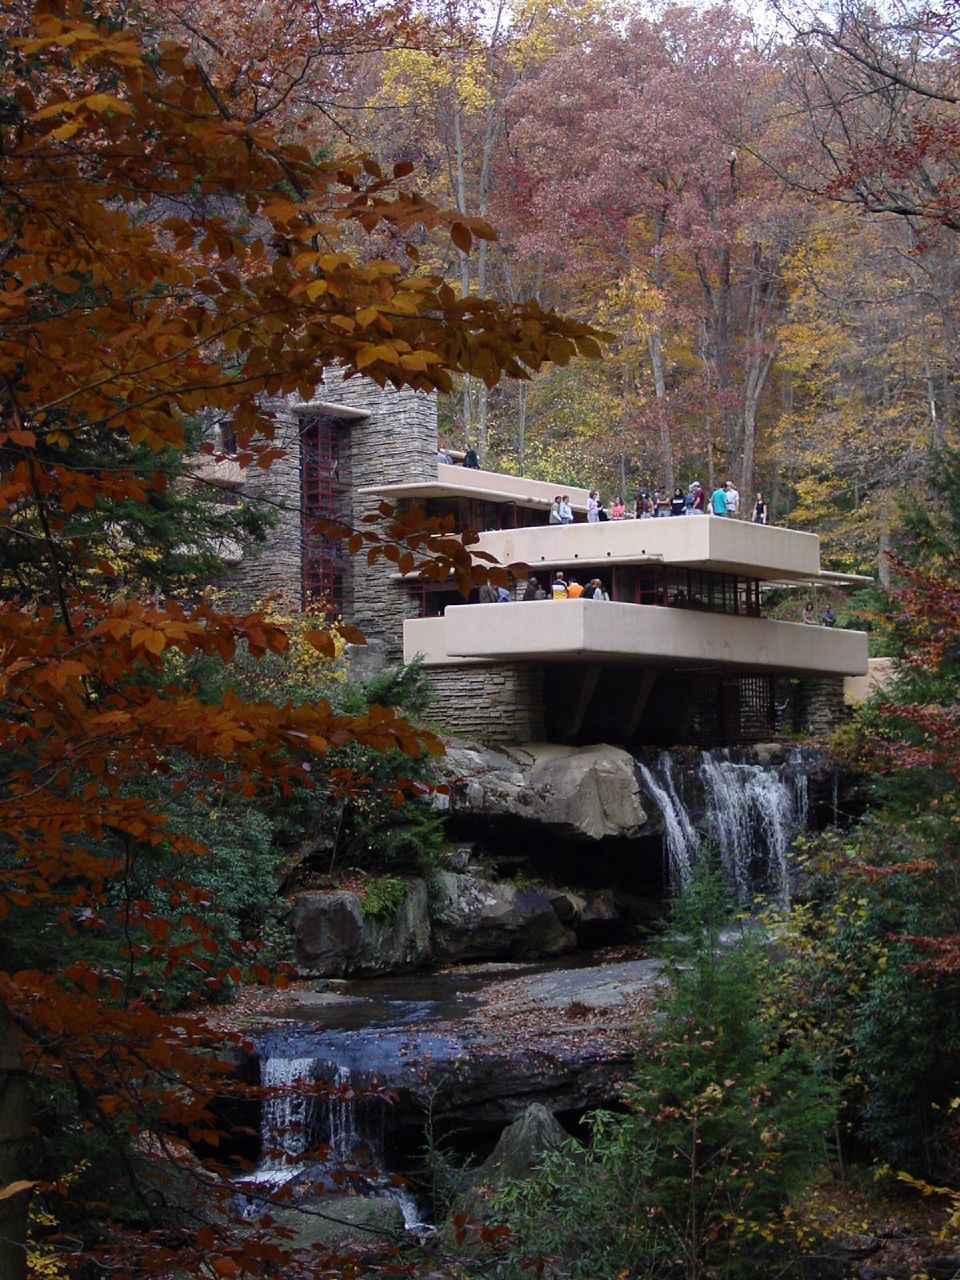 Who Did Frank Lloyd Wright Design The Above House For : frank, lloyd, wright, design, above, house, Fallingwater, Pictures:, Famous, Lookout,, (Frank, Lloyd, Wright, House, Above, Waterfall)